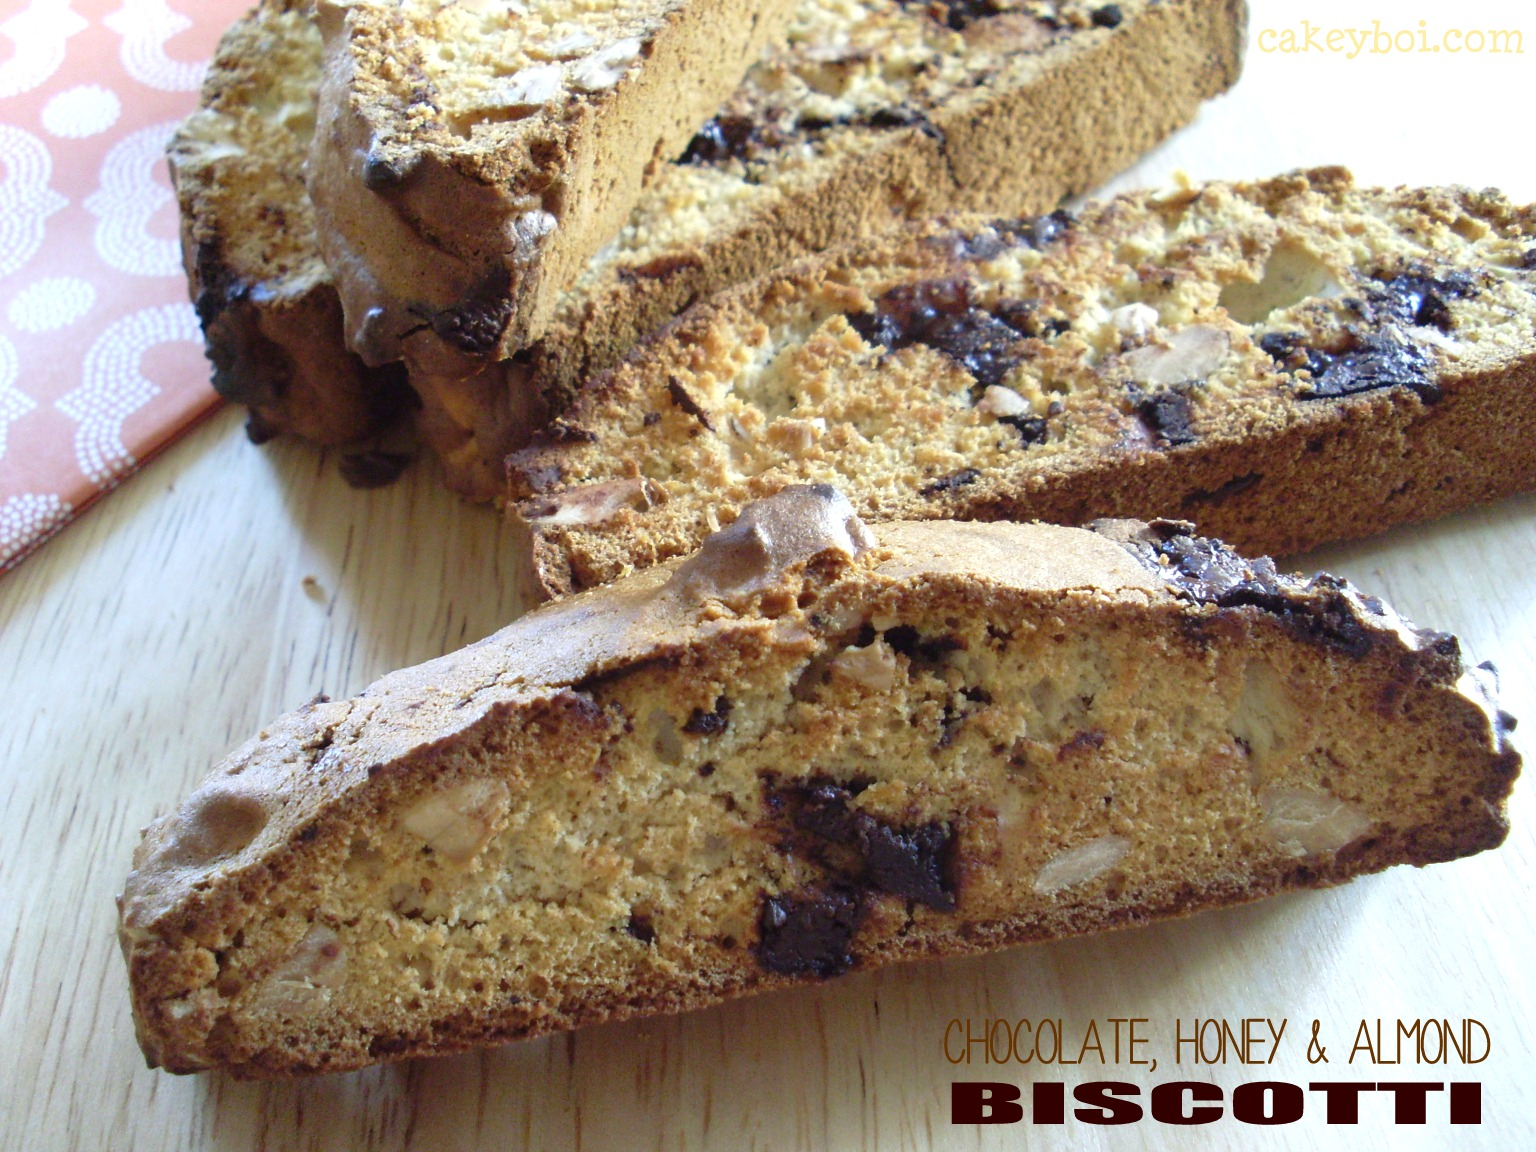 Chocolate, Honey and Almond Biscotti - for Organic September